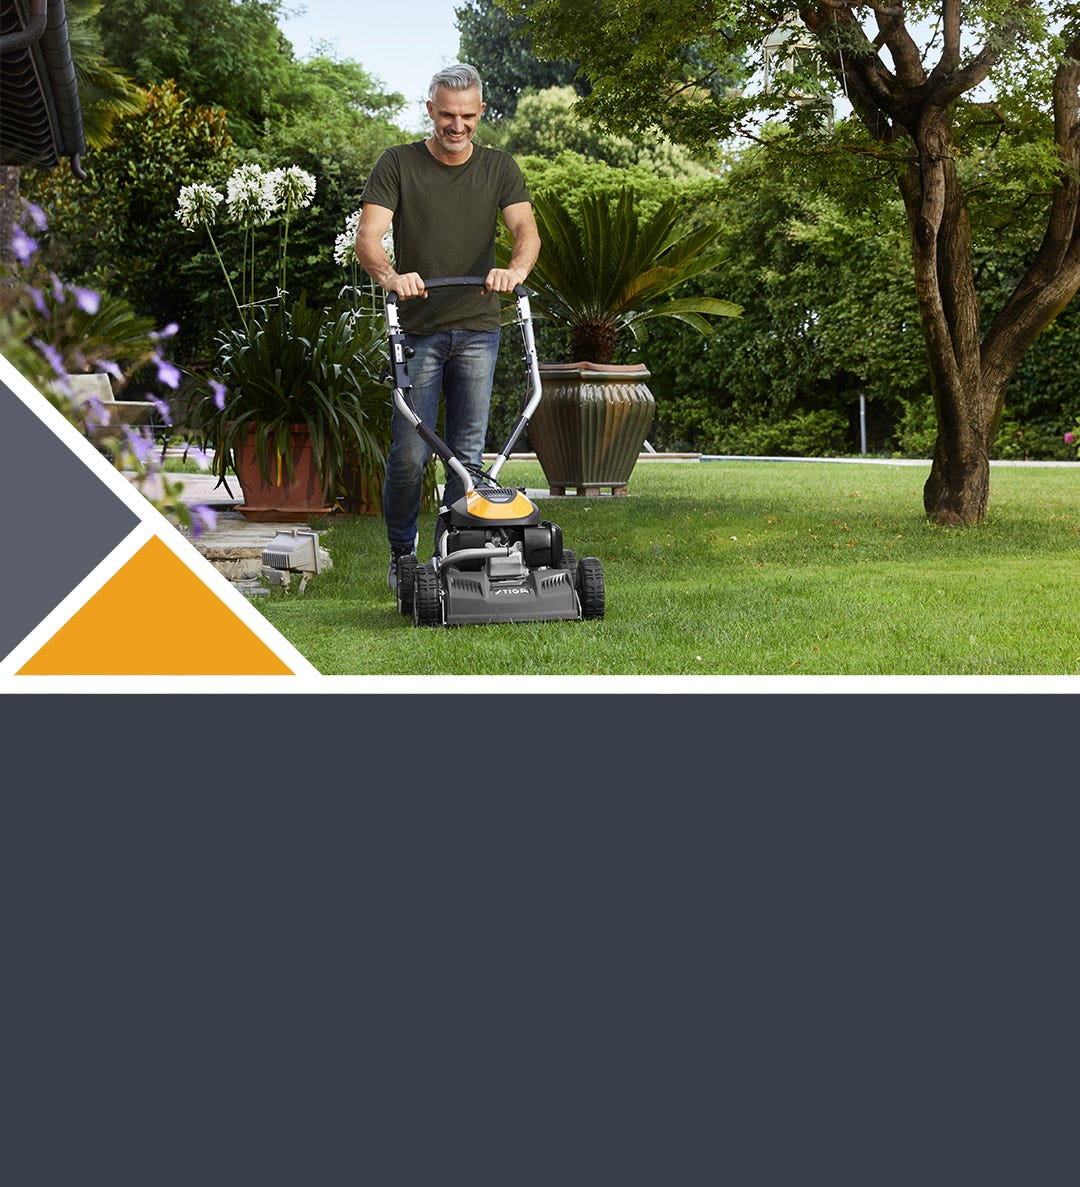 Man mowing the lawn with a STIGA Multiclip Pro lawn mower